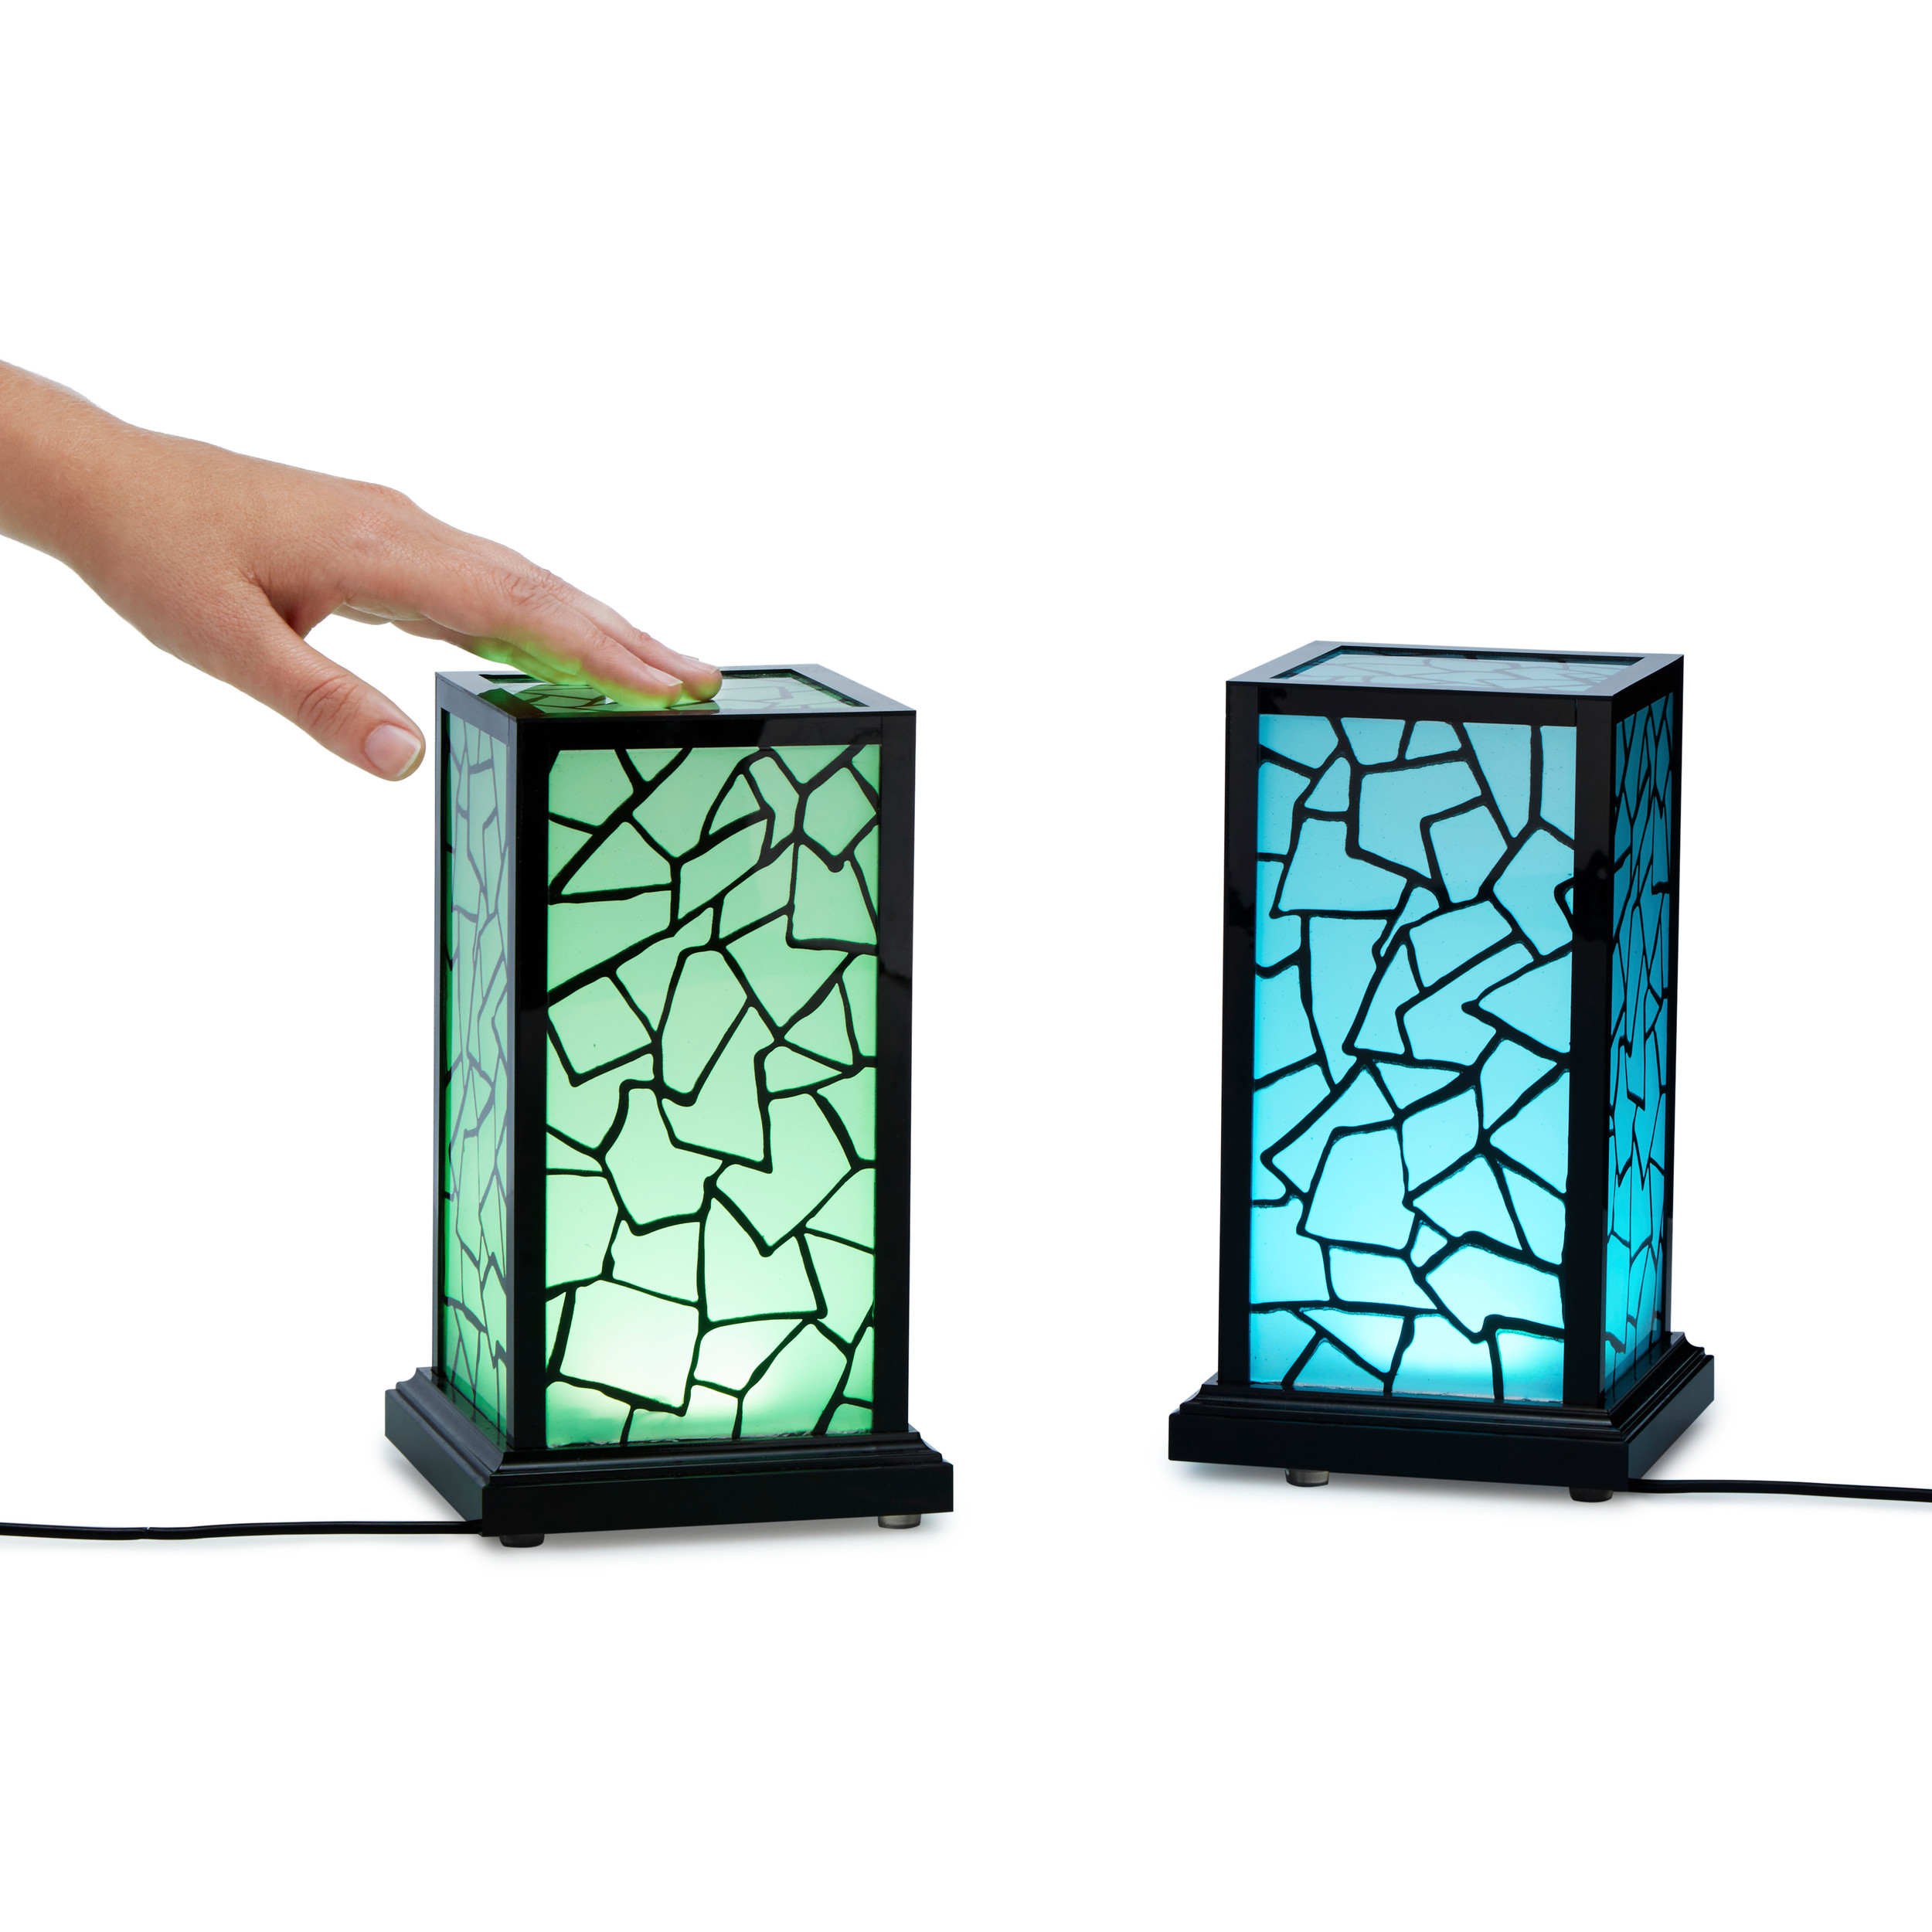 Uncommongoods Long Distance Touch Lamps are like a 'thinking of you' text in lamp form. Sync them via Wi-Fi, and then whenever one of you touches the lamp, the mate will glow.